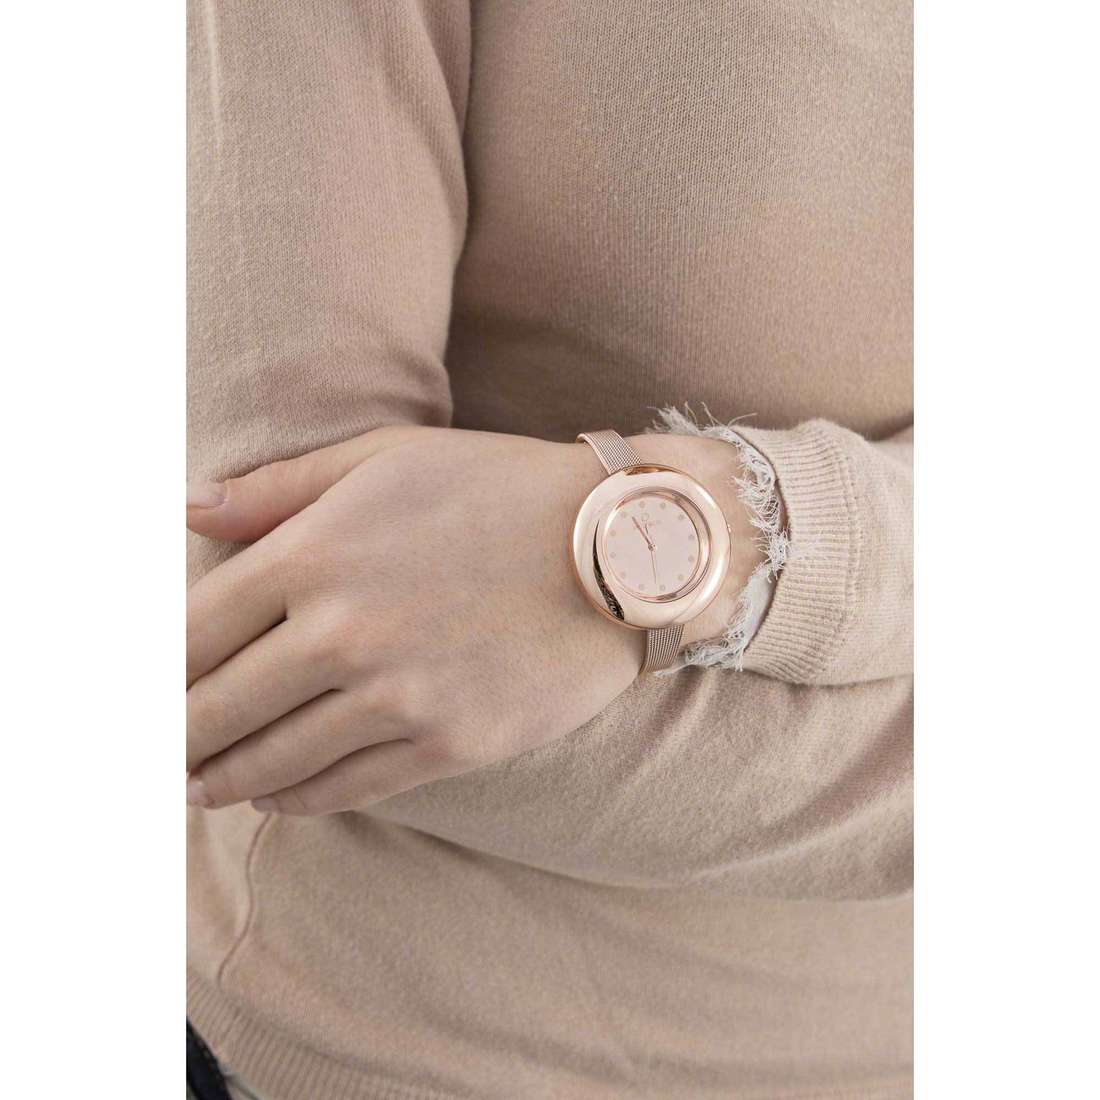 Ops Objects seul le temps Lux edition femme OPSPW-334 indosso